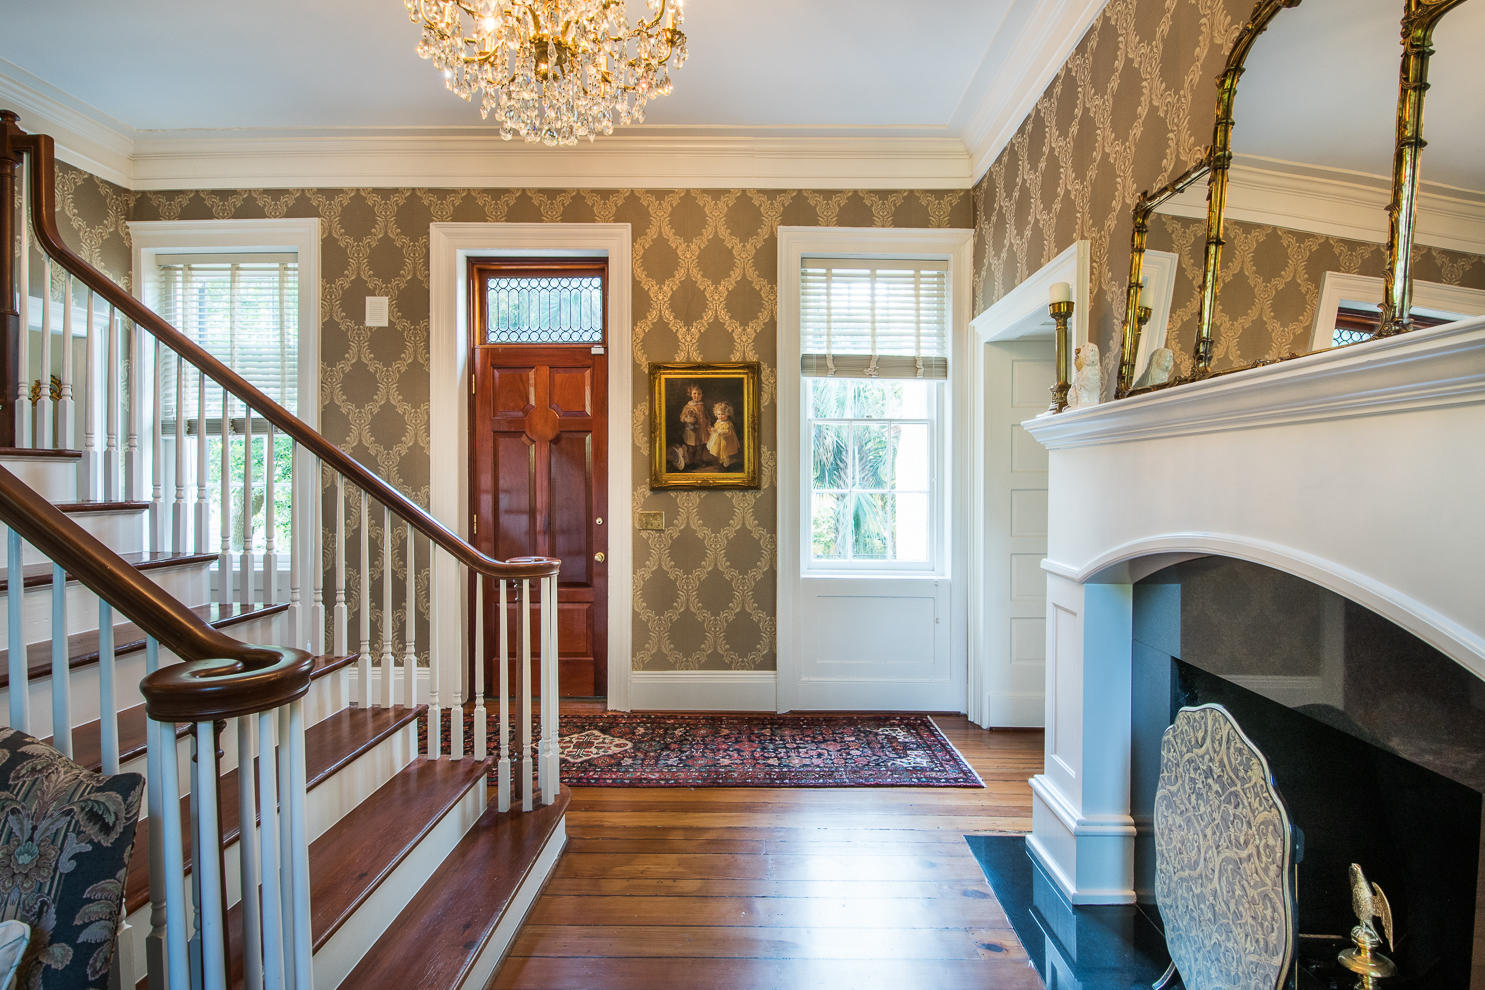 South of Broad Homes For Sale - 1 Prices, Charleston, SC - 6